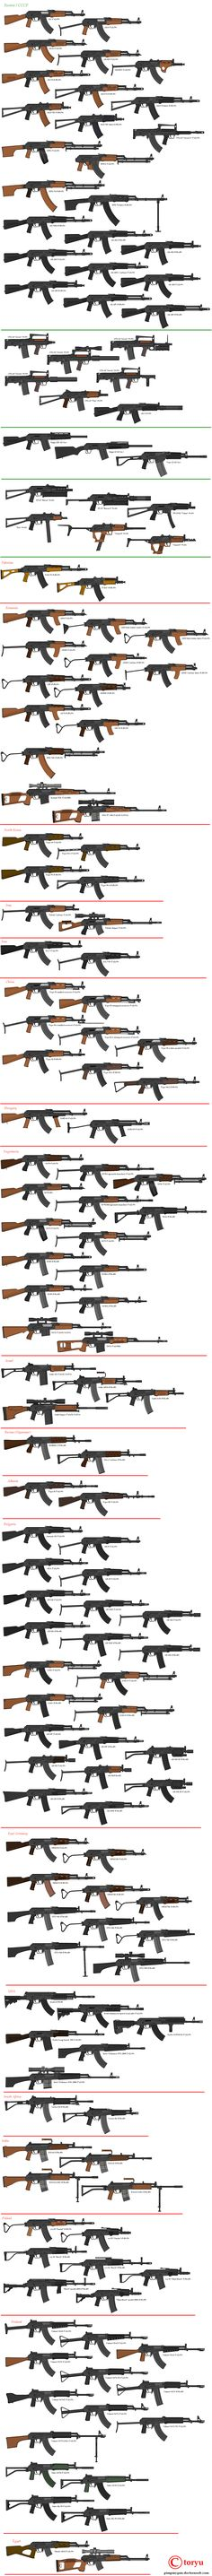 Kalashnikov AK 47 and Variants from Russia and the rest of the world.